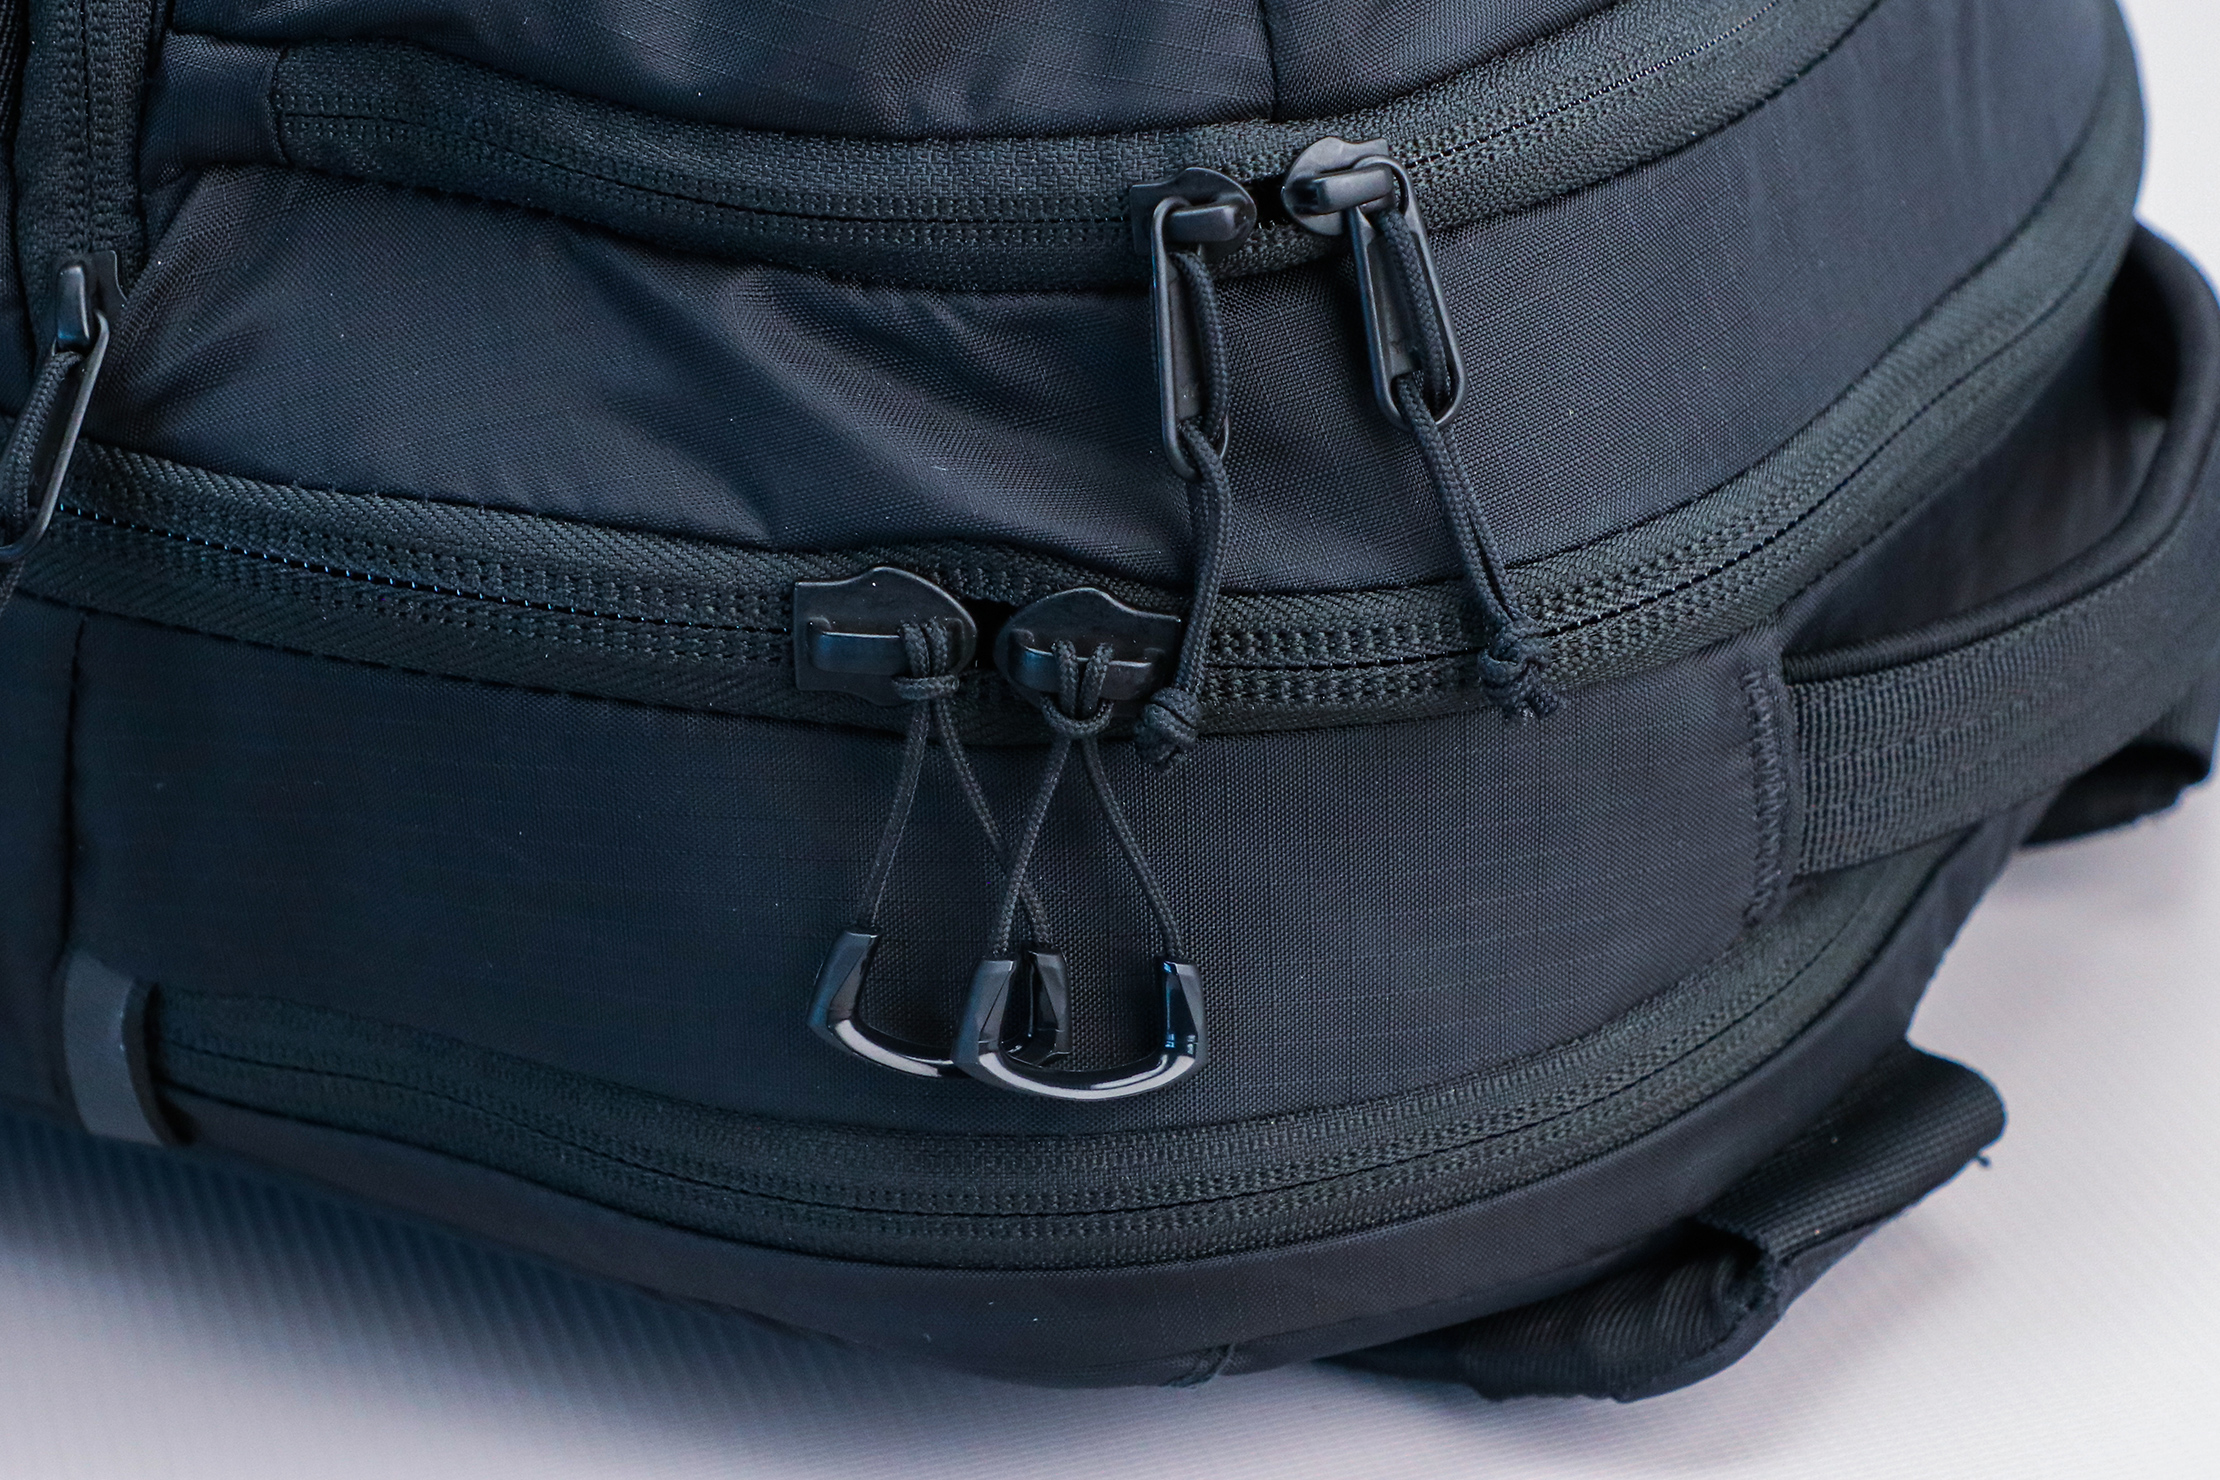 The North Face Surge Backpack zippers and zipper pulls